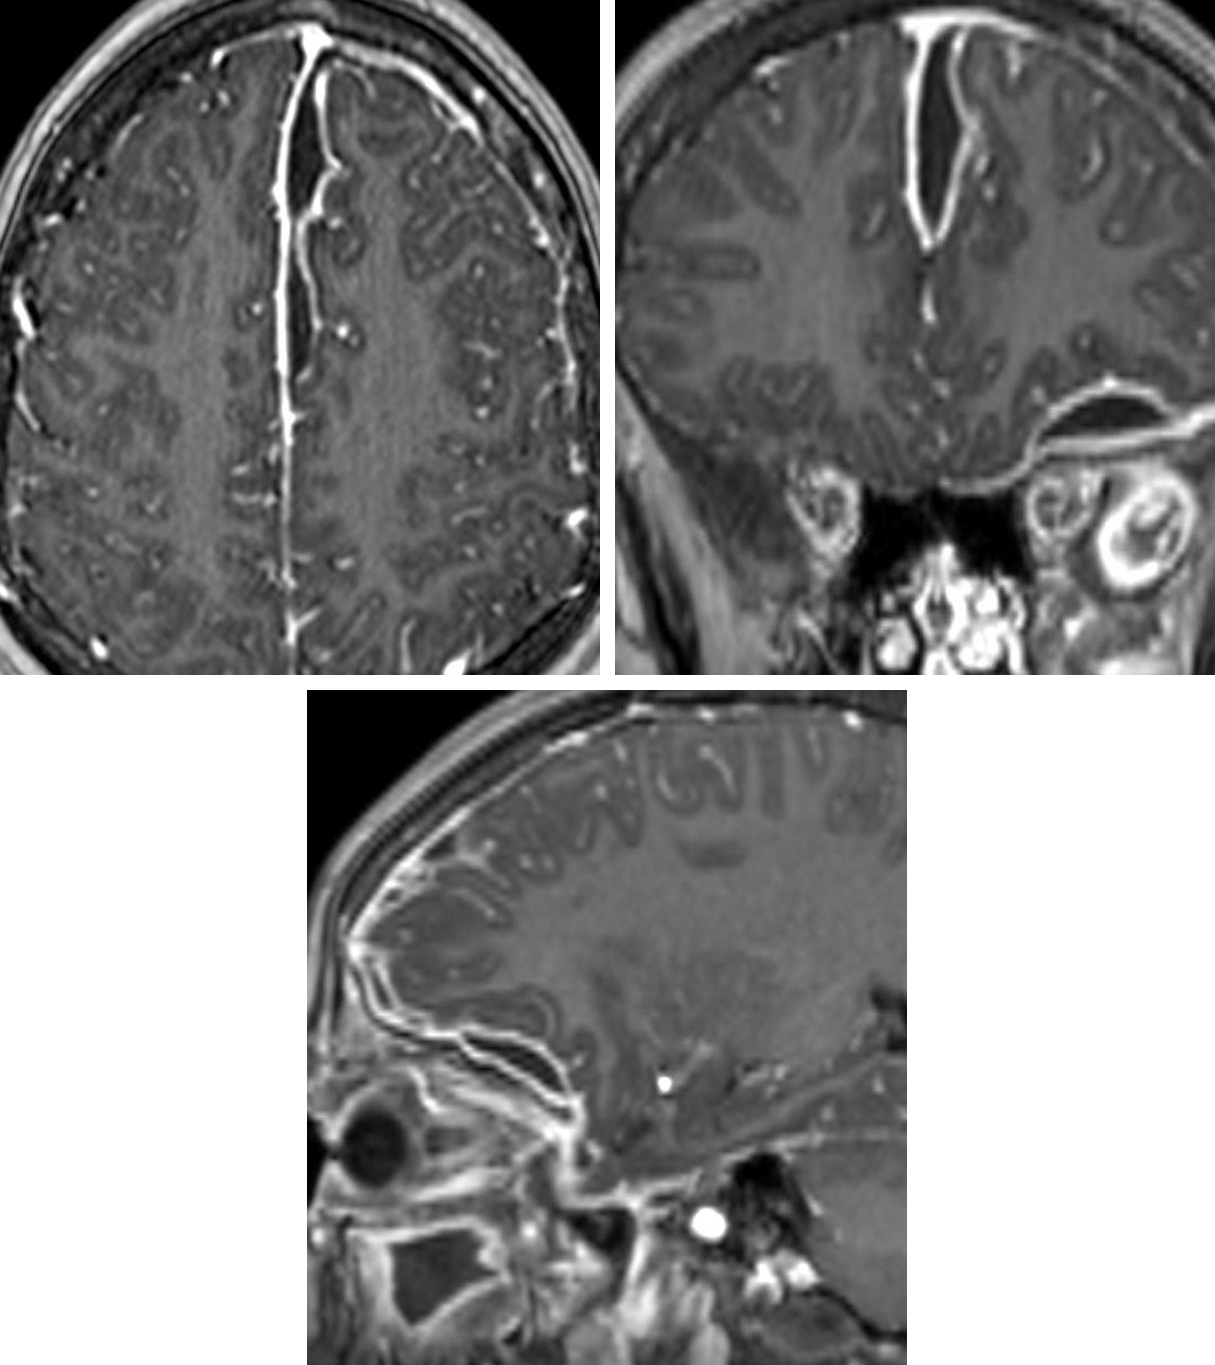 Figure 2: The T1 post-contrast sequences show loculation and avid peripheral enhancement of this same subdural collection along the falx and along the inferior surface of the left frontal lobe. Also notice the thickening and enhancement of the adjacent meninges.